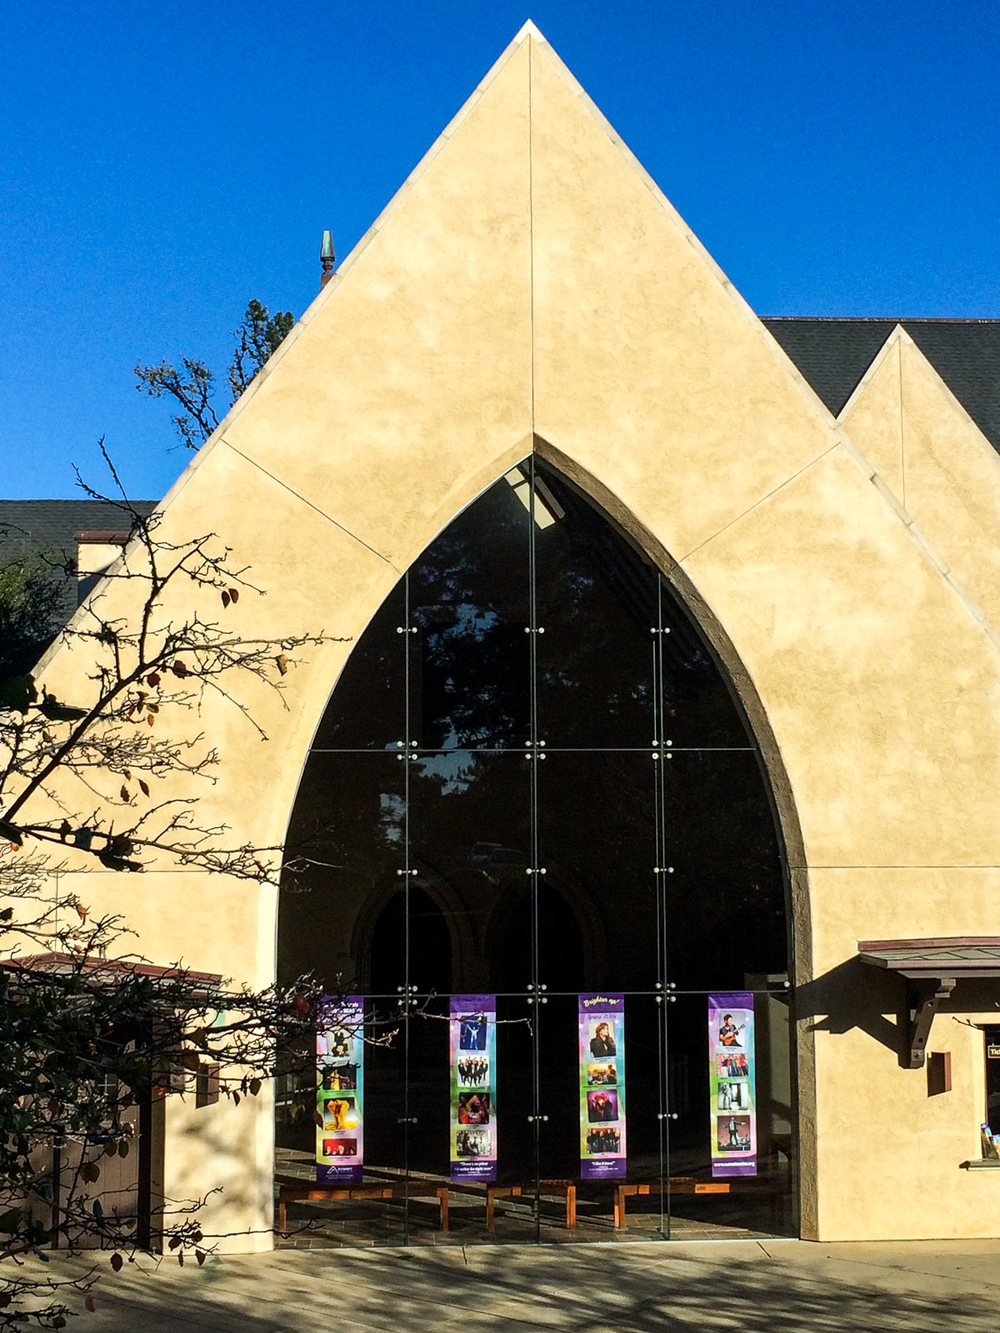 Late Gothic Revival architecture is just one of the many charms that the Sunset Center in Carmel, CA has to offer visitors.